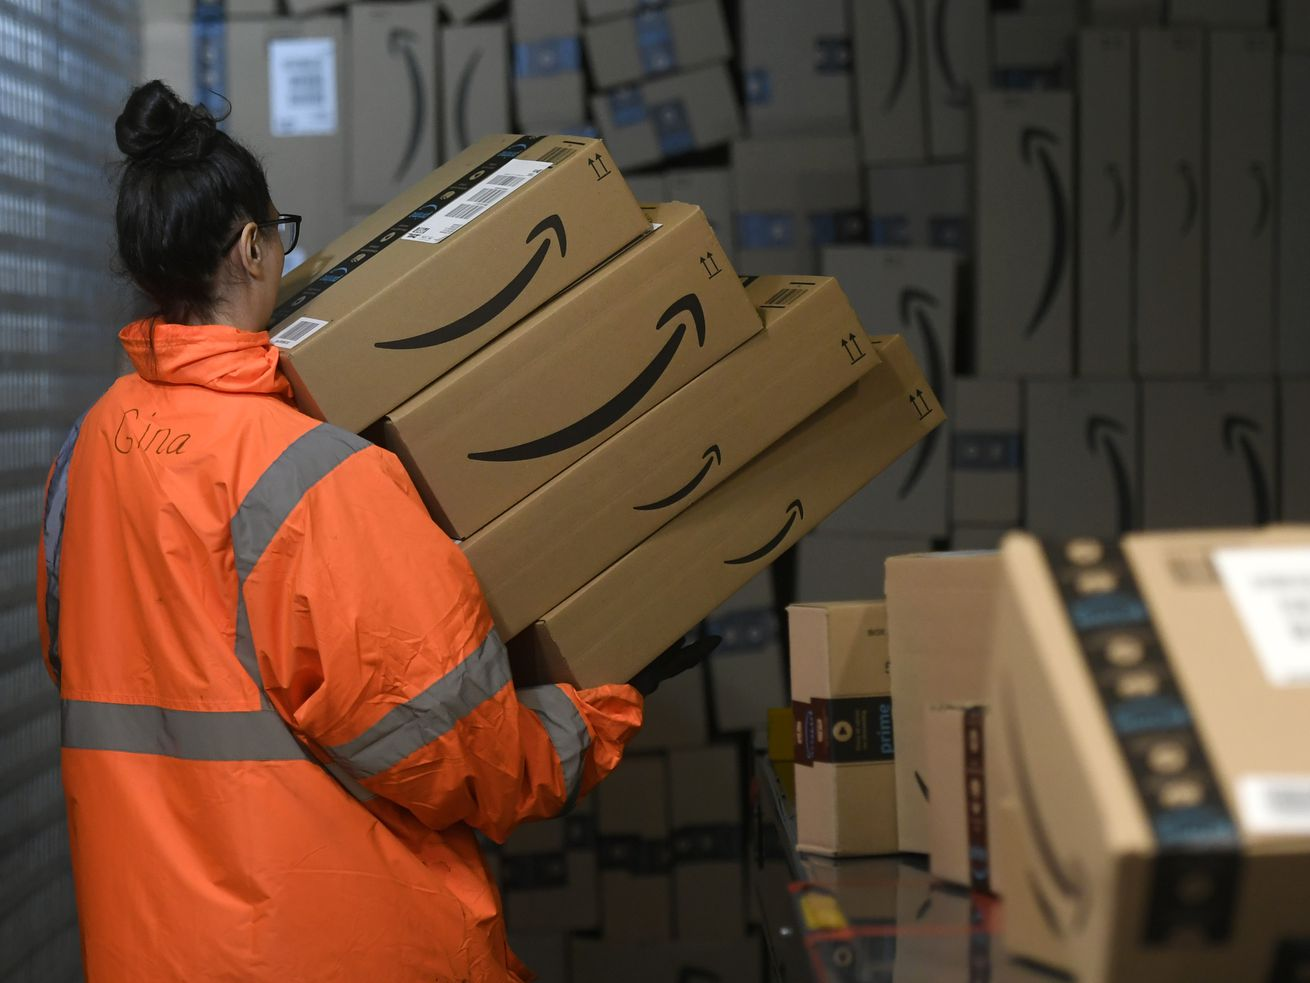 An employee carries a stack of boxes at an Amazon distribution center in Moenchengladbach on December 17, 2019.